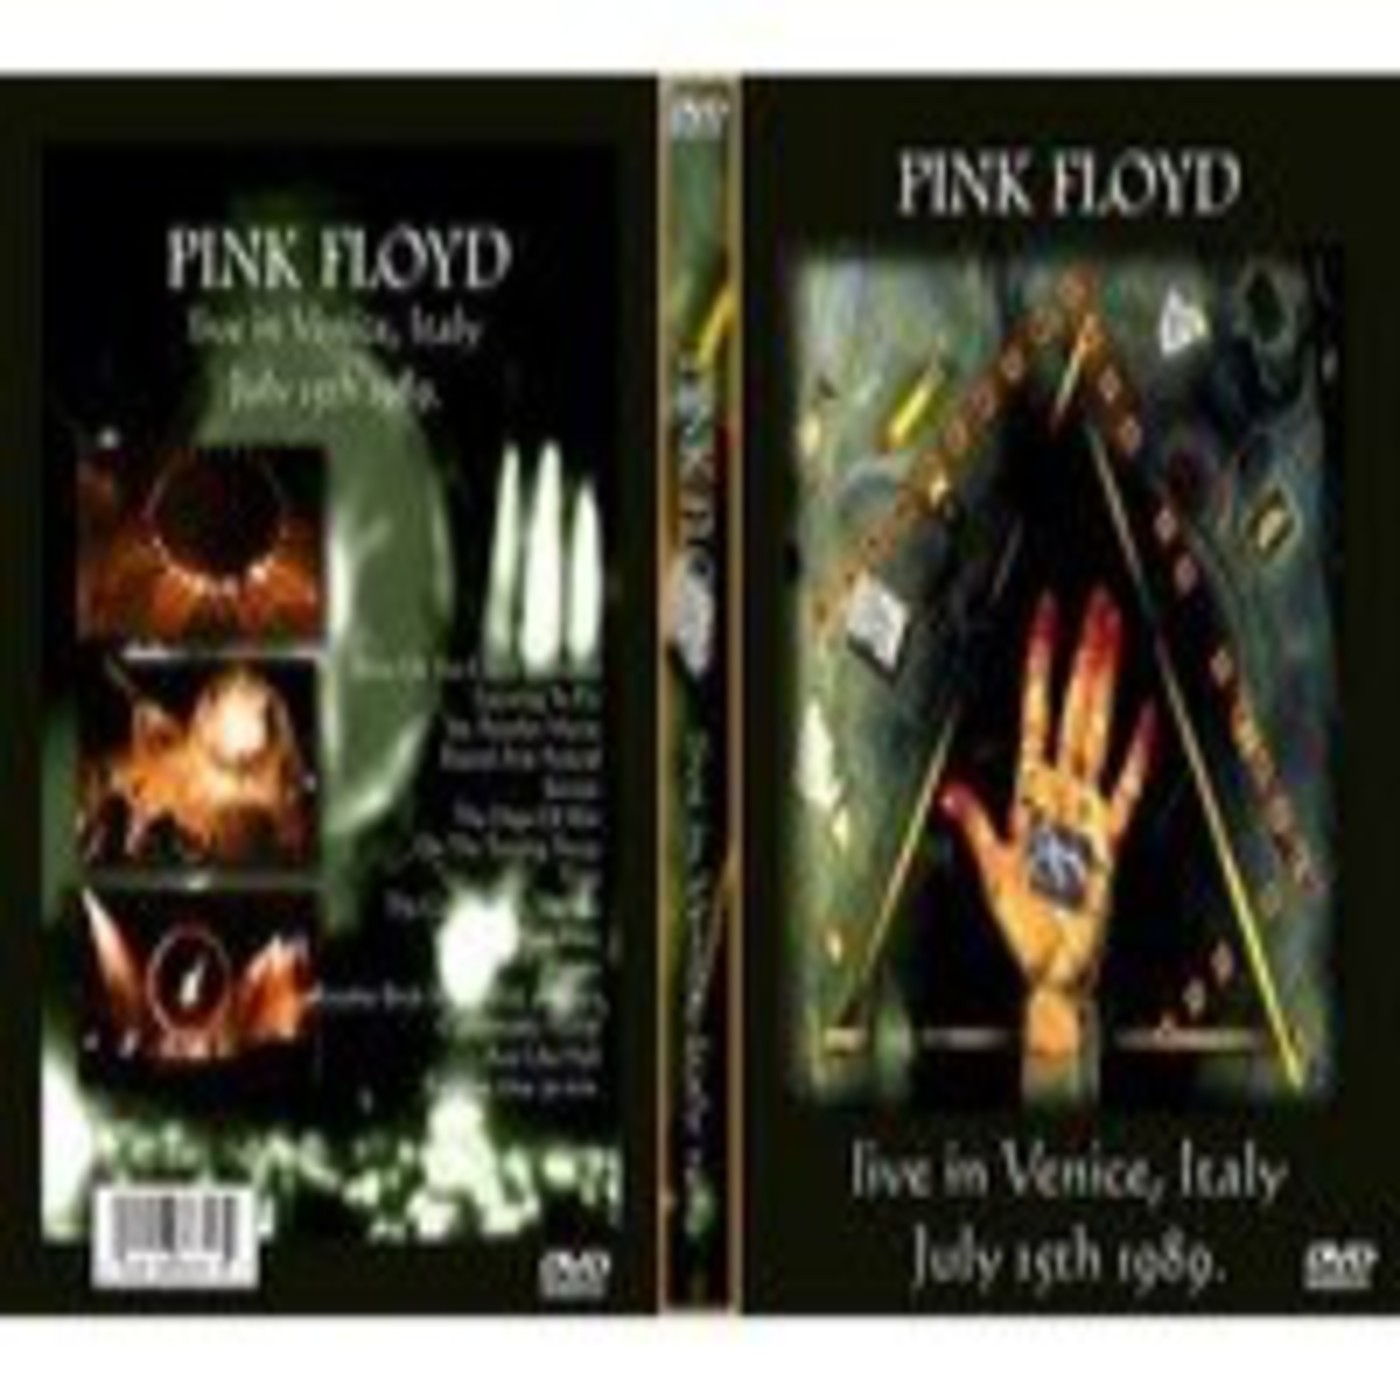 In CONCERT - Pink Floyd Live in Venice 1989